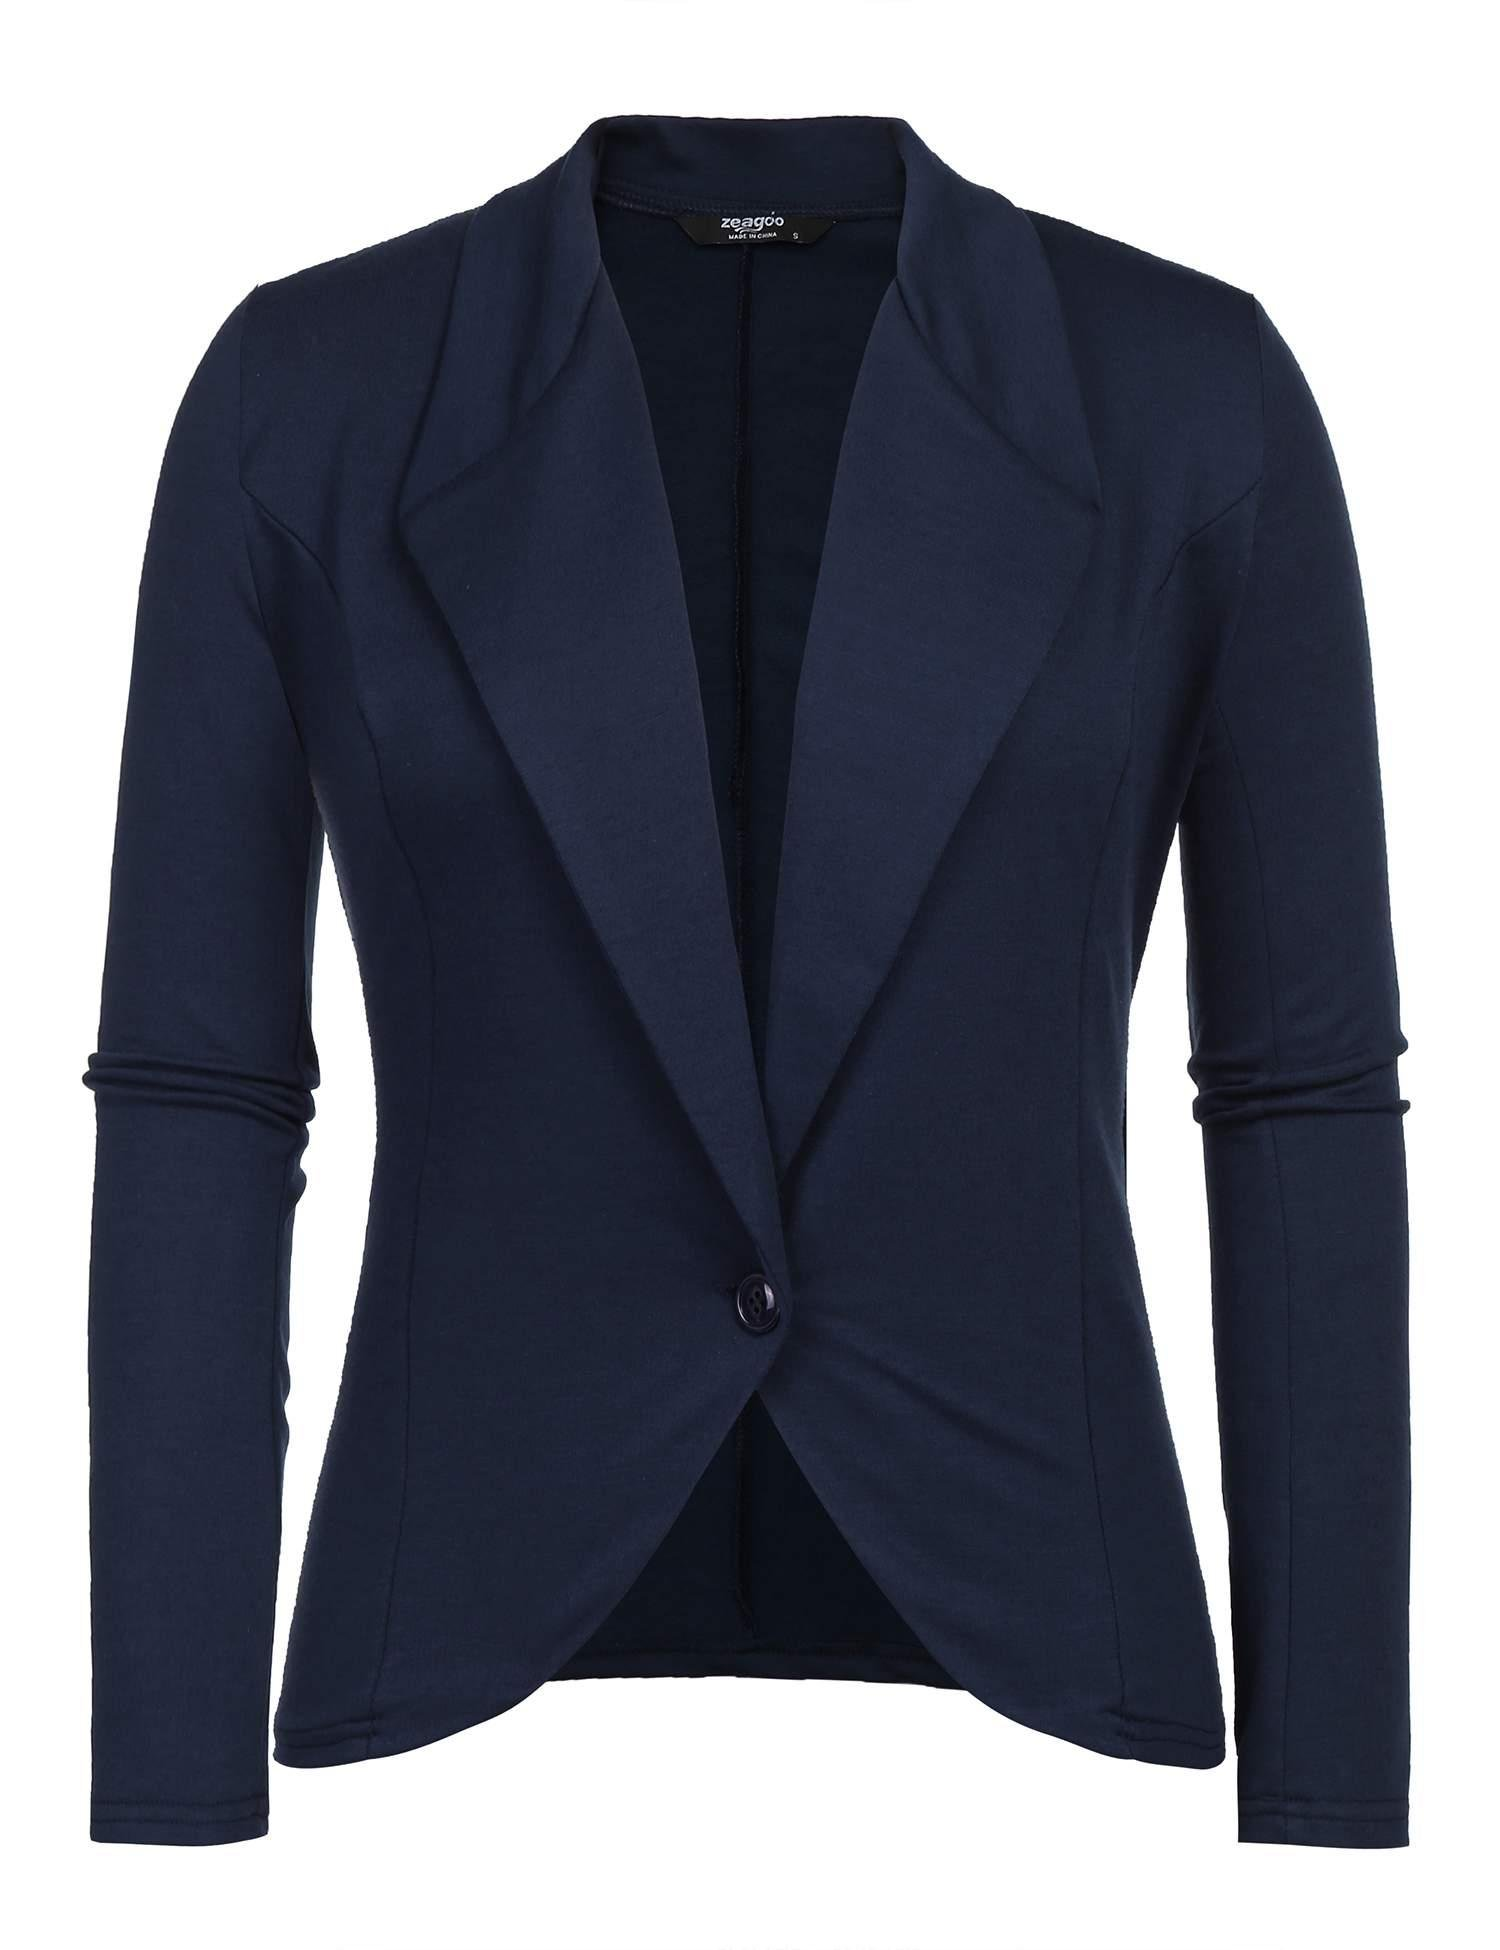 Grabsa Women's Casual Work Solid Color Knit Blazer